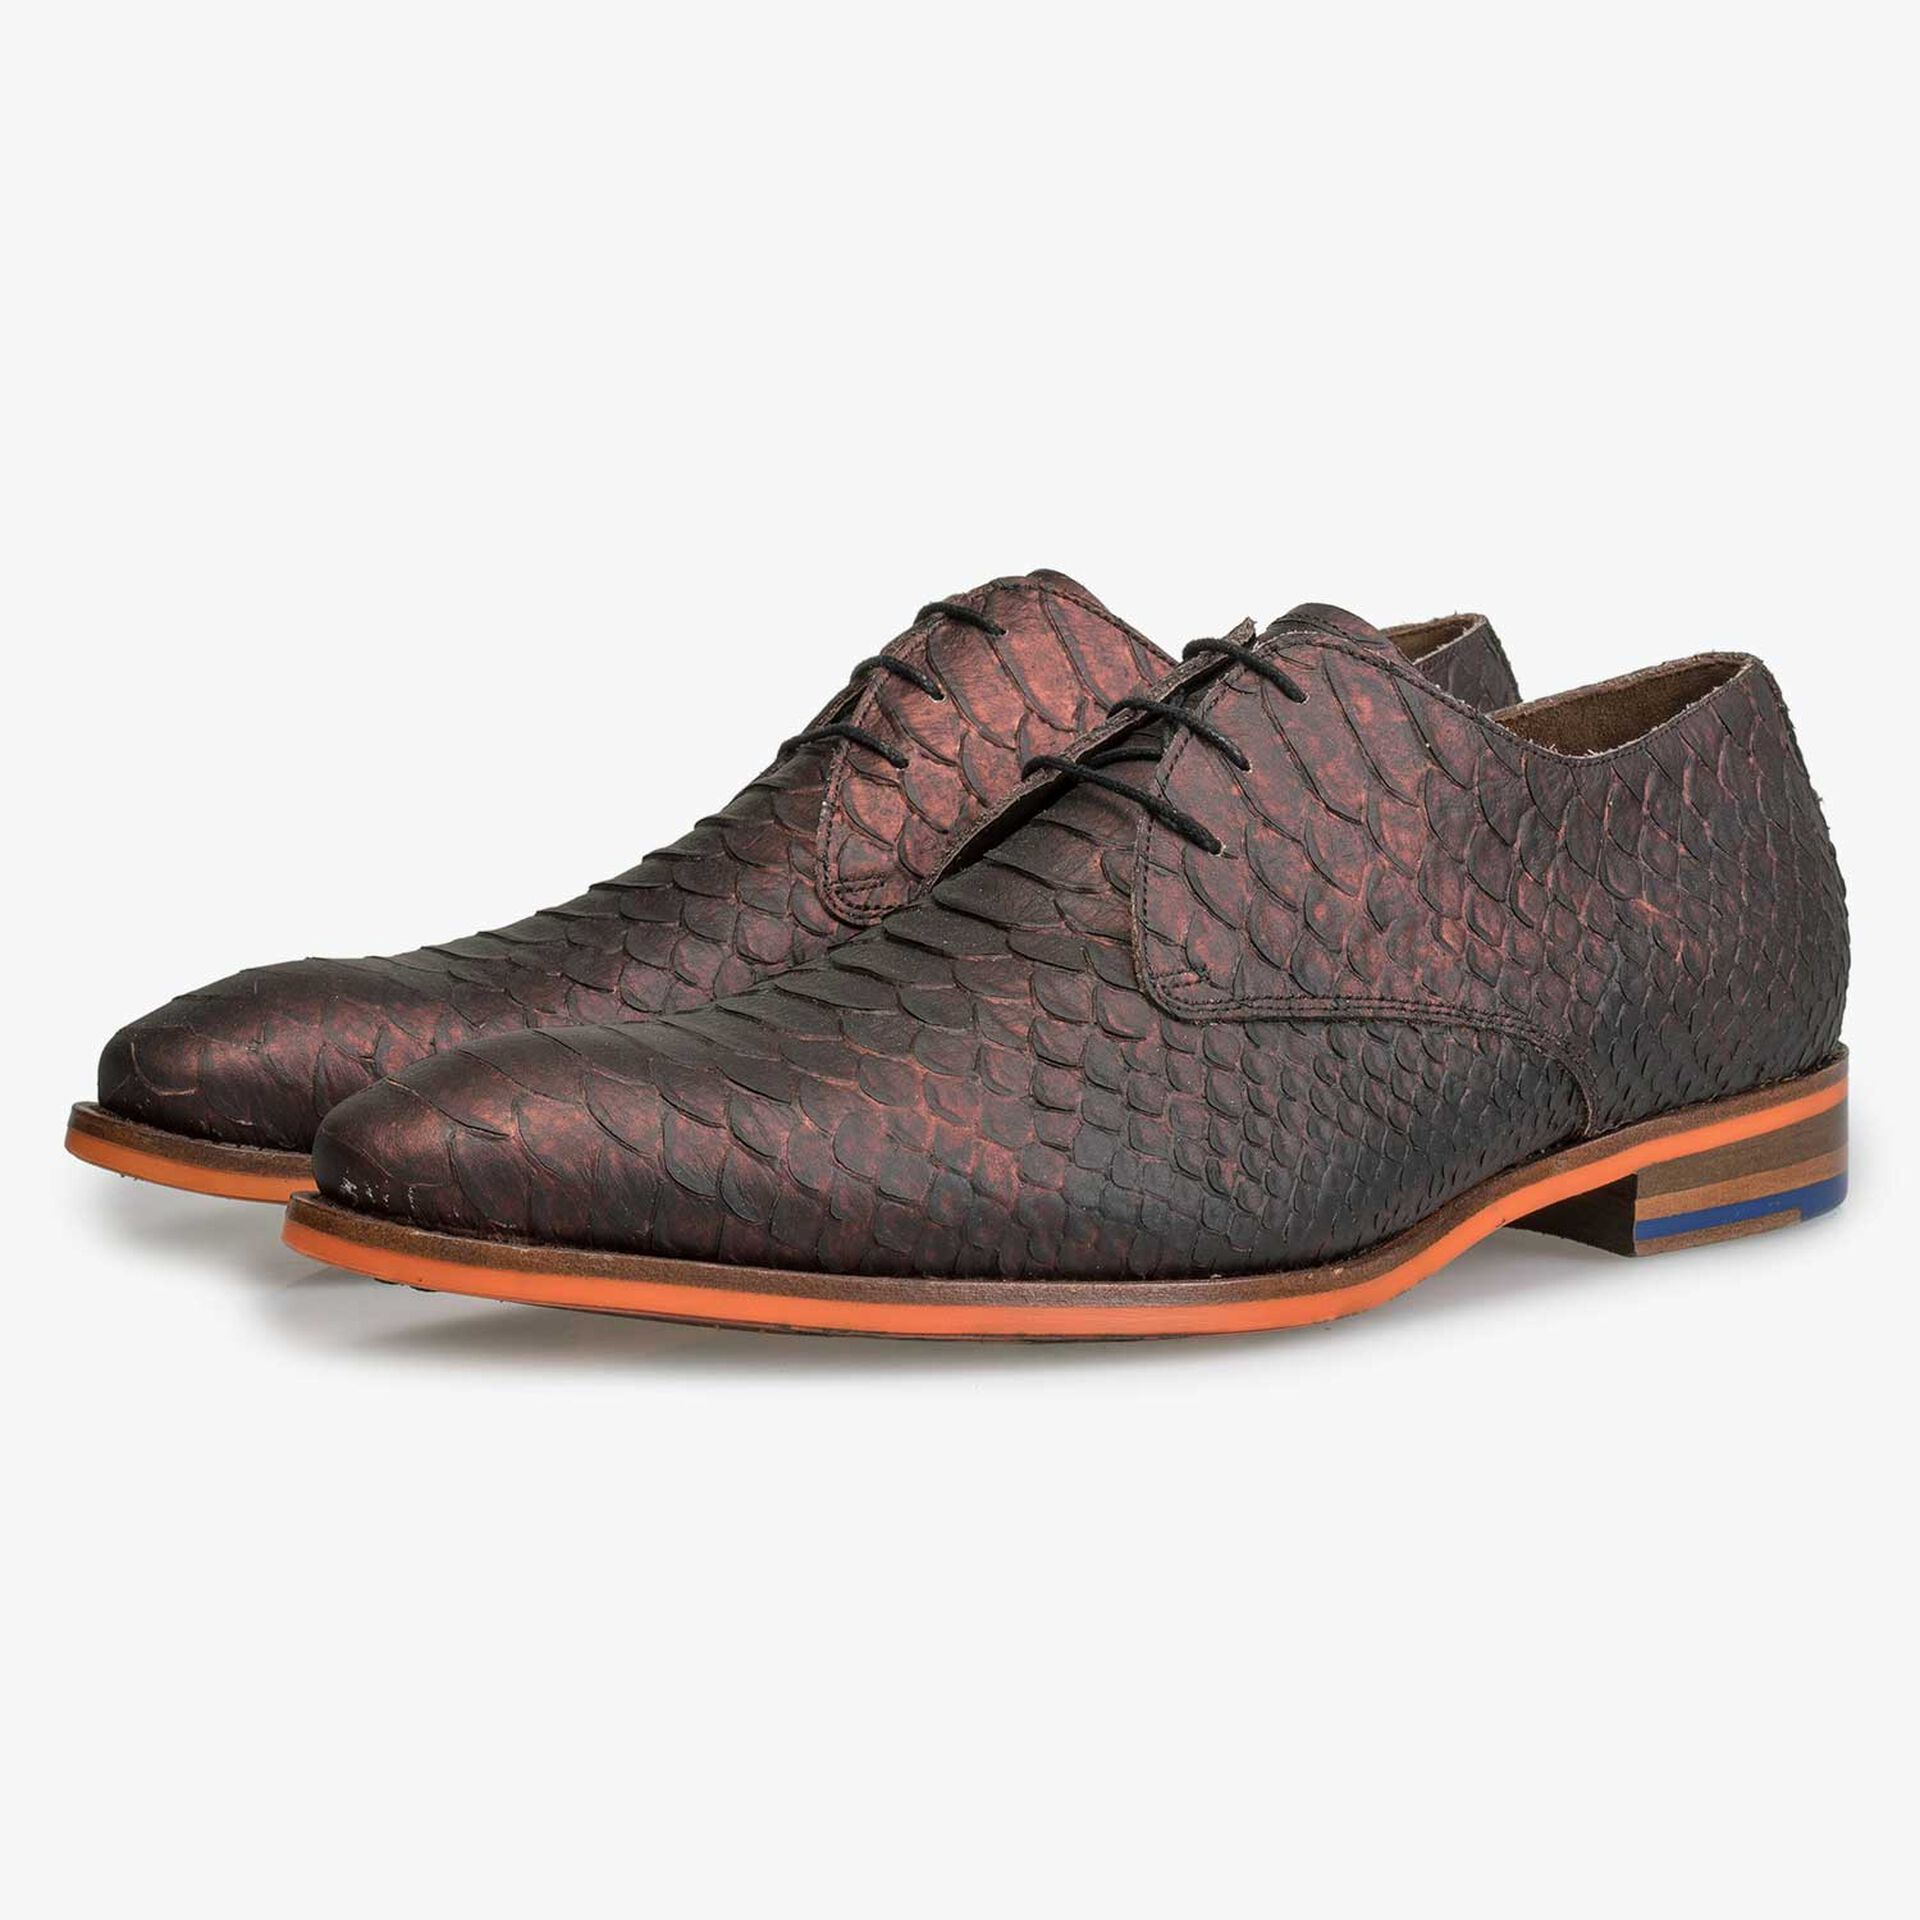 Leather lace shoe with snake print and orange outsole